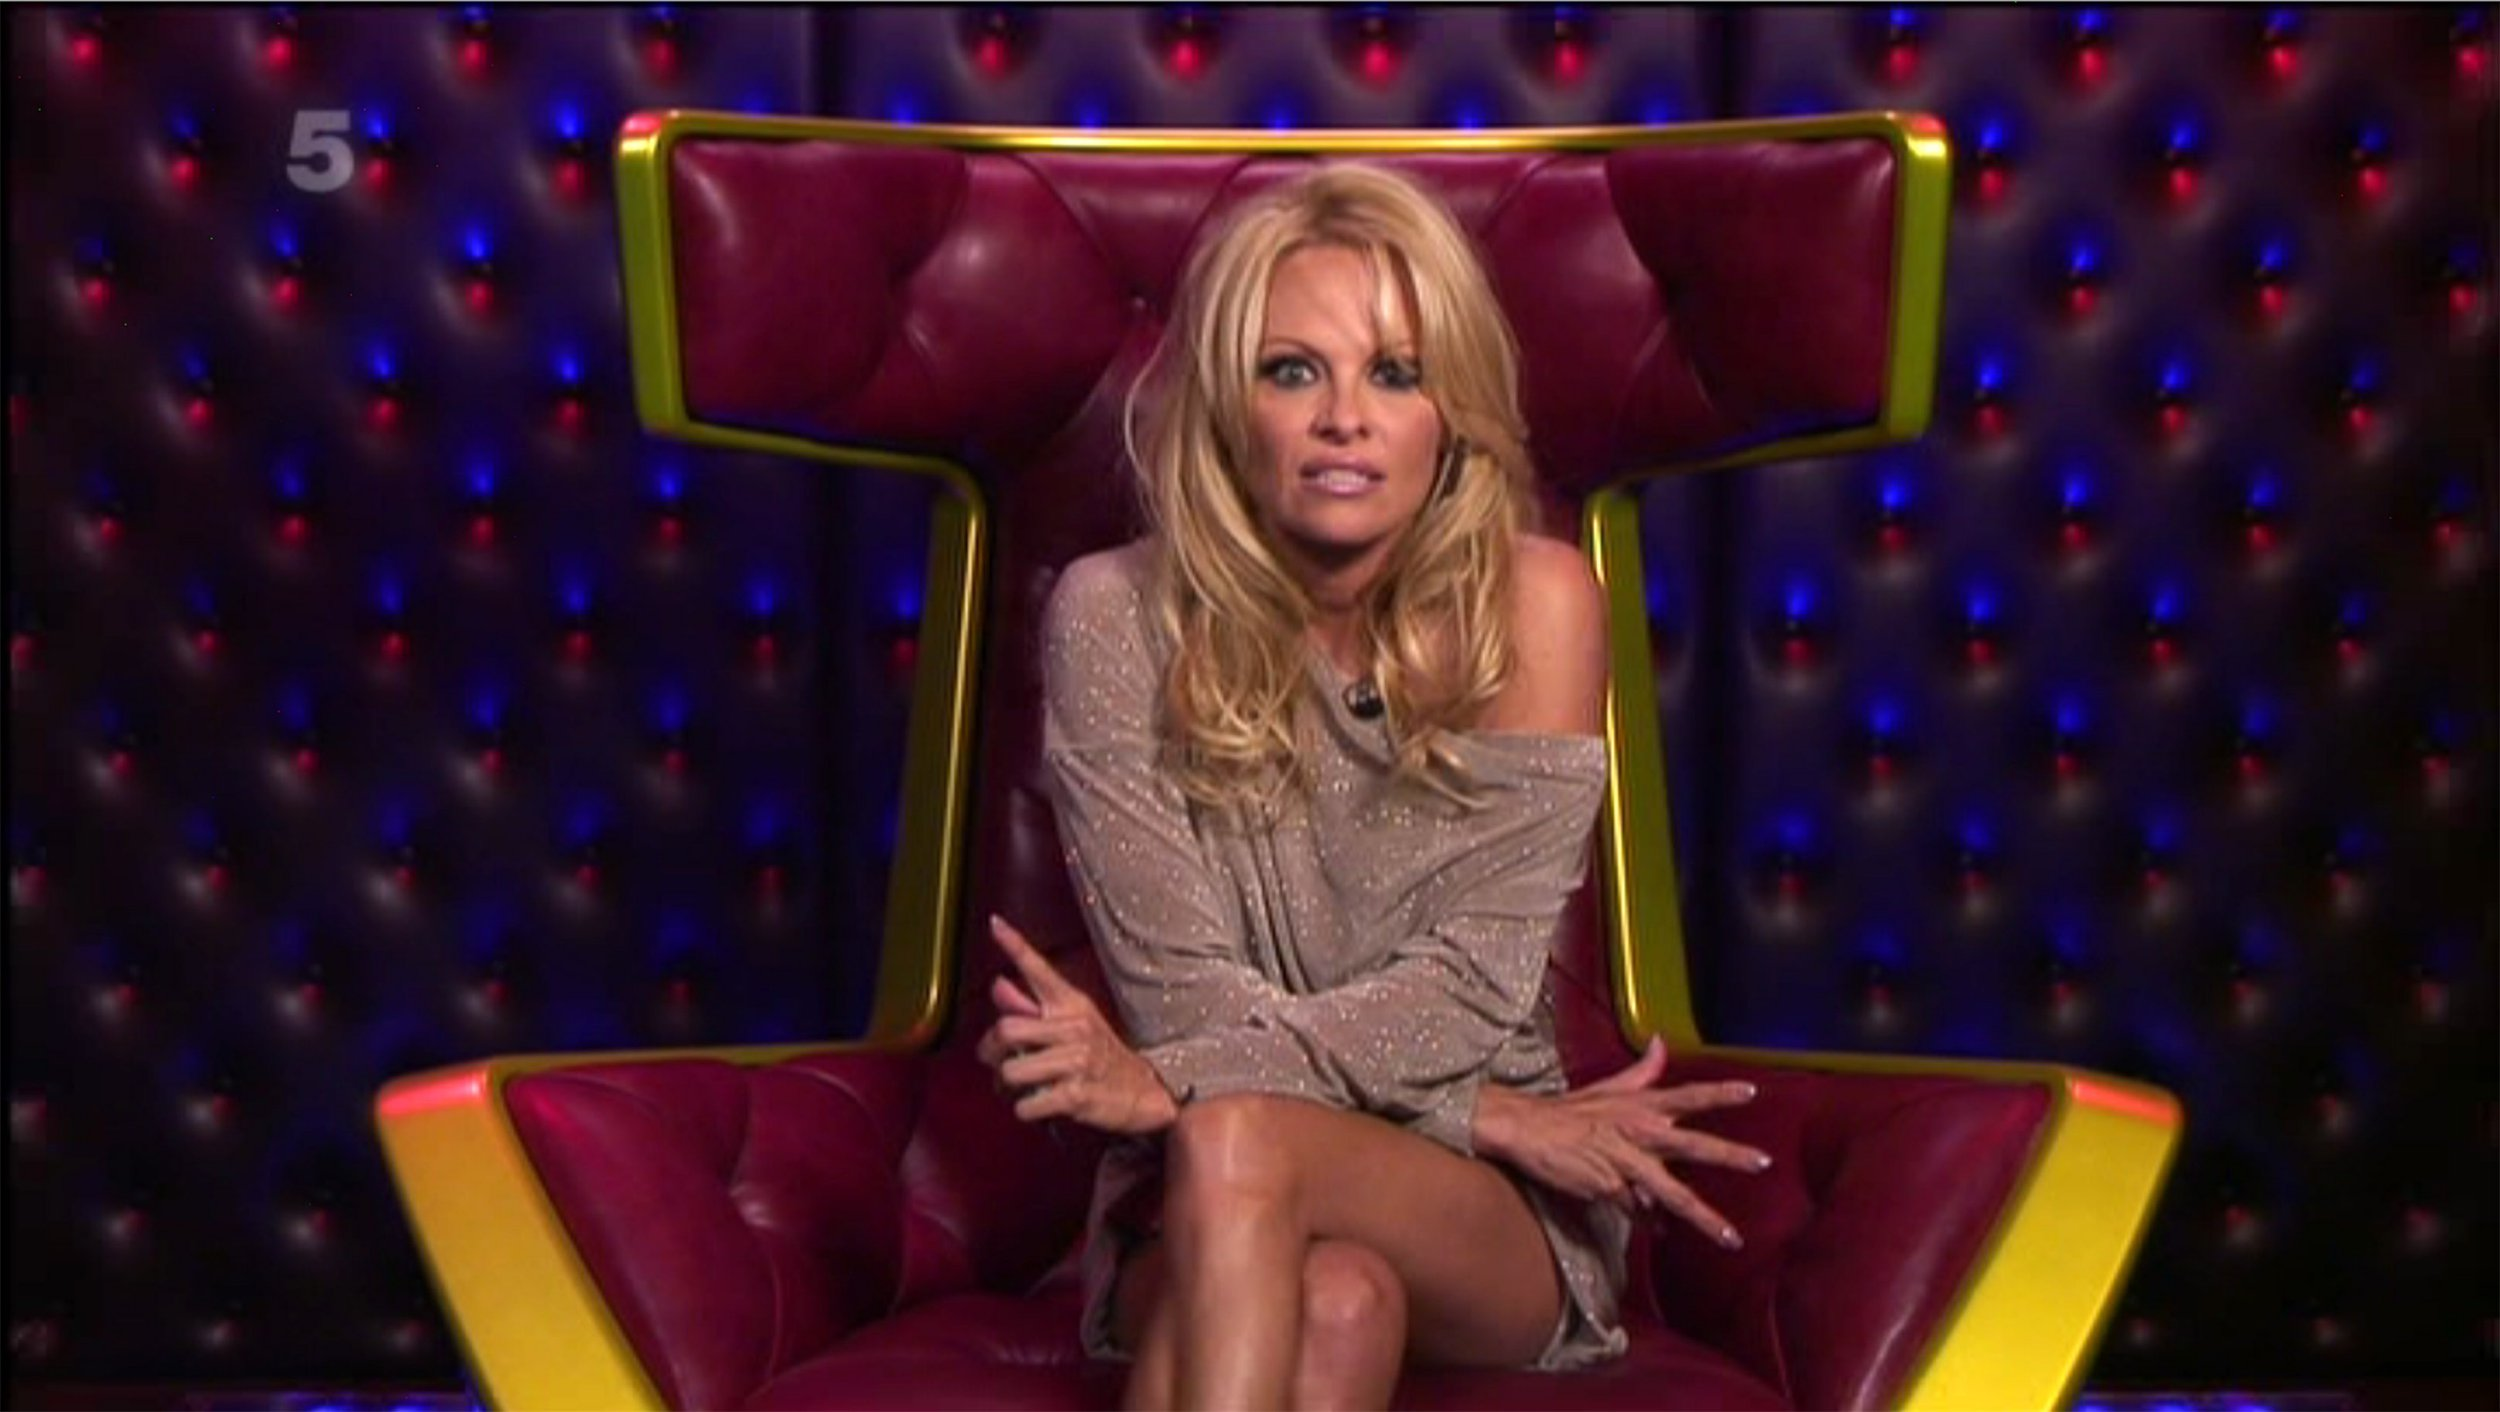 Rex Features Ltd. do not claim any Copyright or License of this image. Mandatory Credit: Photo by REX/Shutterstock (1439559aj) Pamela Anderson in the diary room answers questions about the housemates to win them food and drink 'Big Brother' TV programme, Elstree Studios, Hertfordshire, Britain - 11 Sep 2011